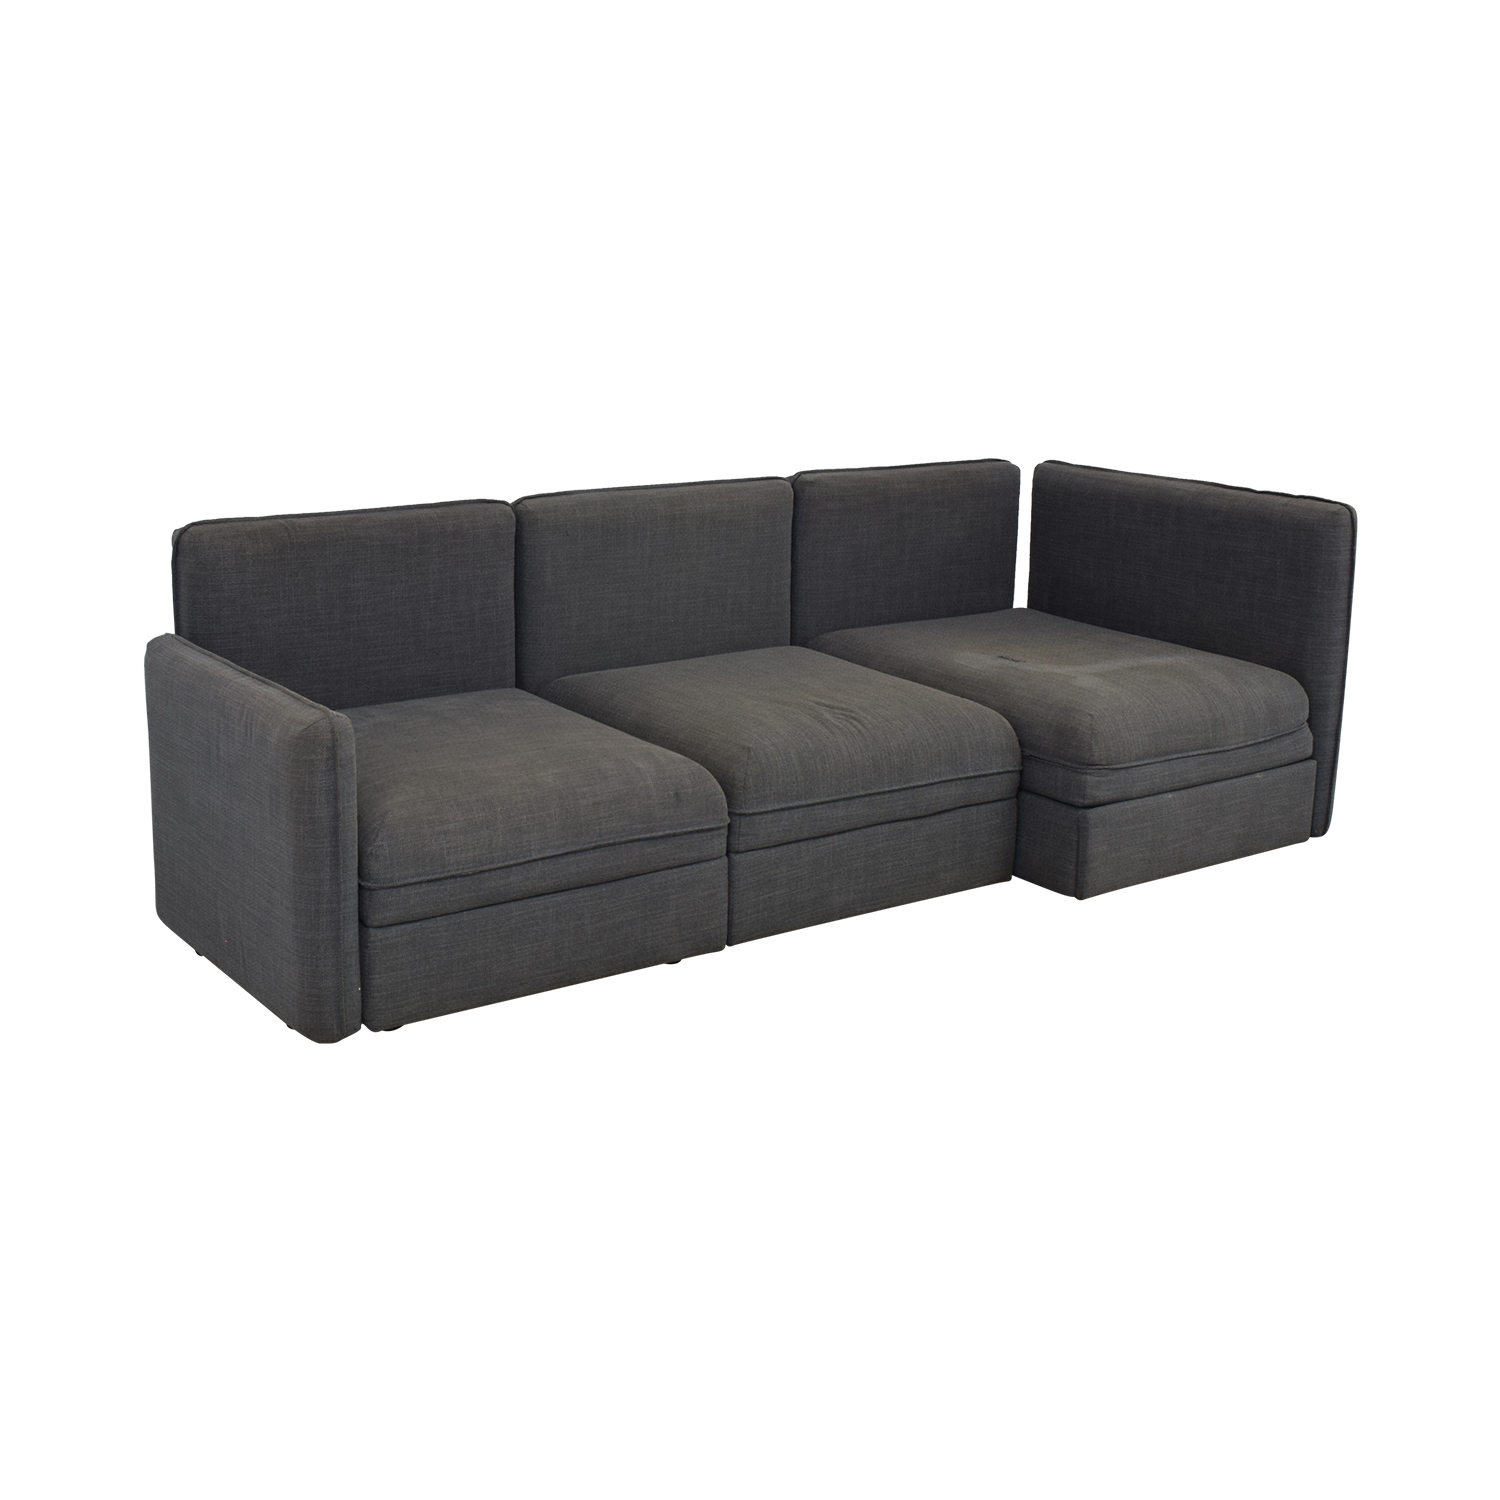 77% OFF - IKEA Ikea Vallentuna Sectional Sleeper Sofa / Sofas